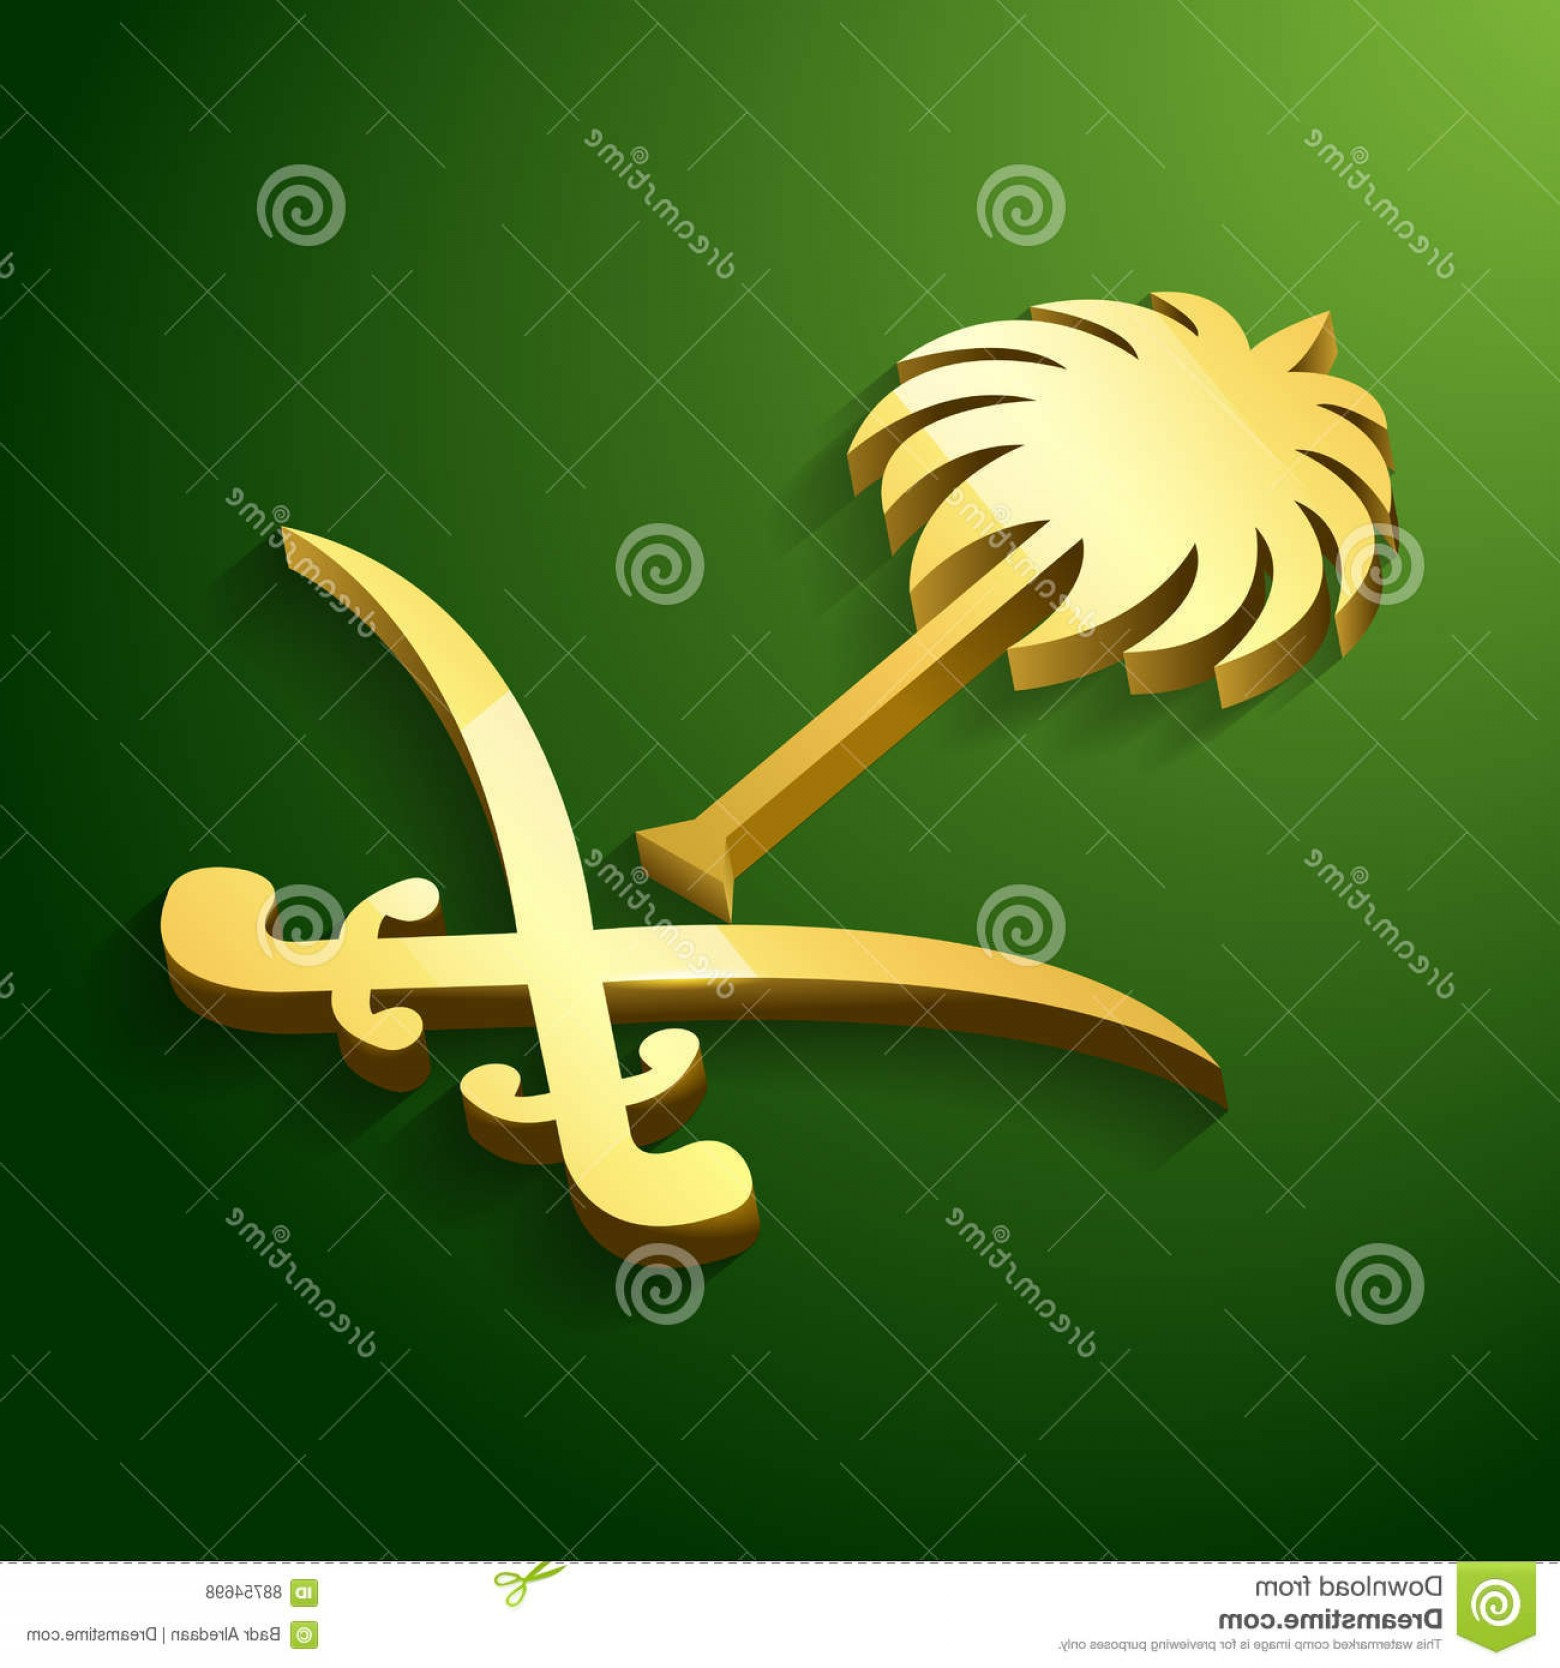 Saudi Sword Vector: D National Emblem Of The Kingdom Of Saudi Arabia With Gold Color And Green Background Vector Illustration Illustration